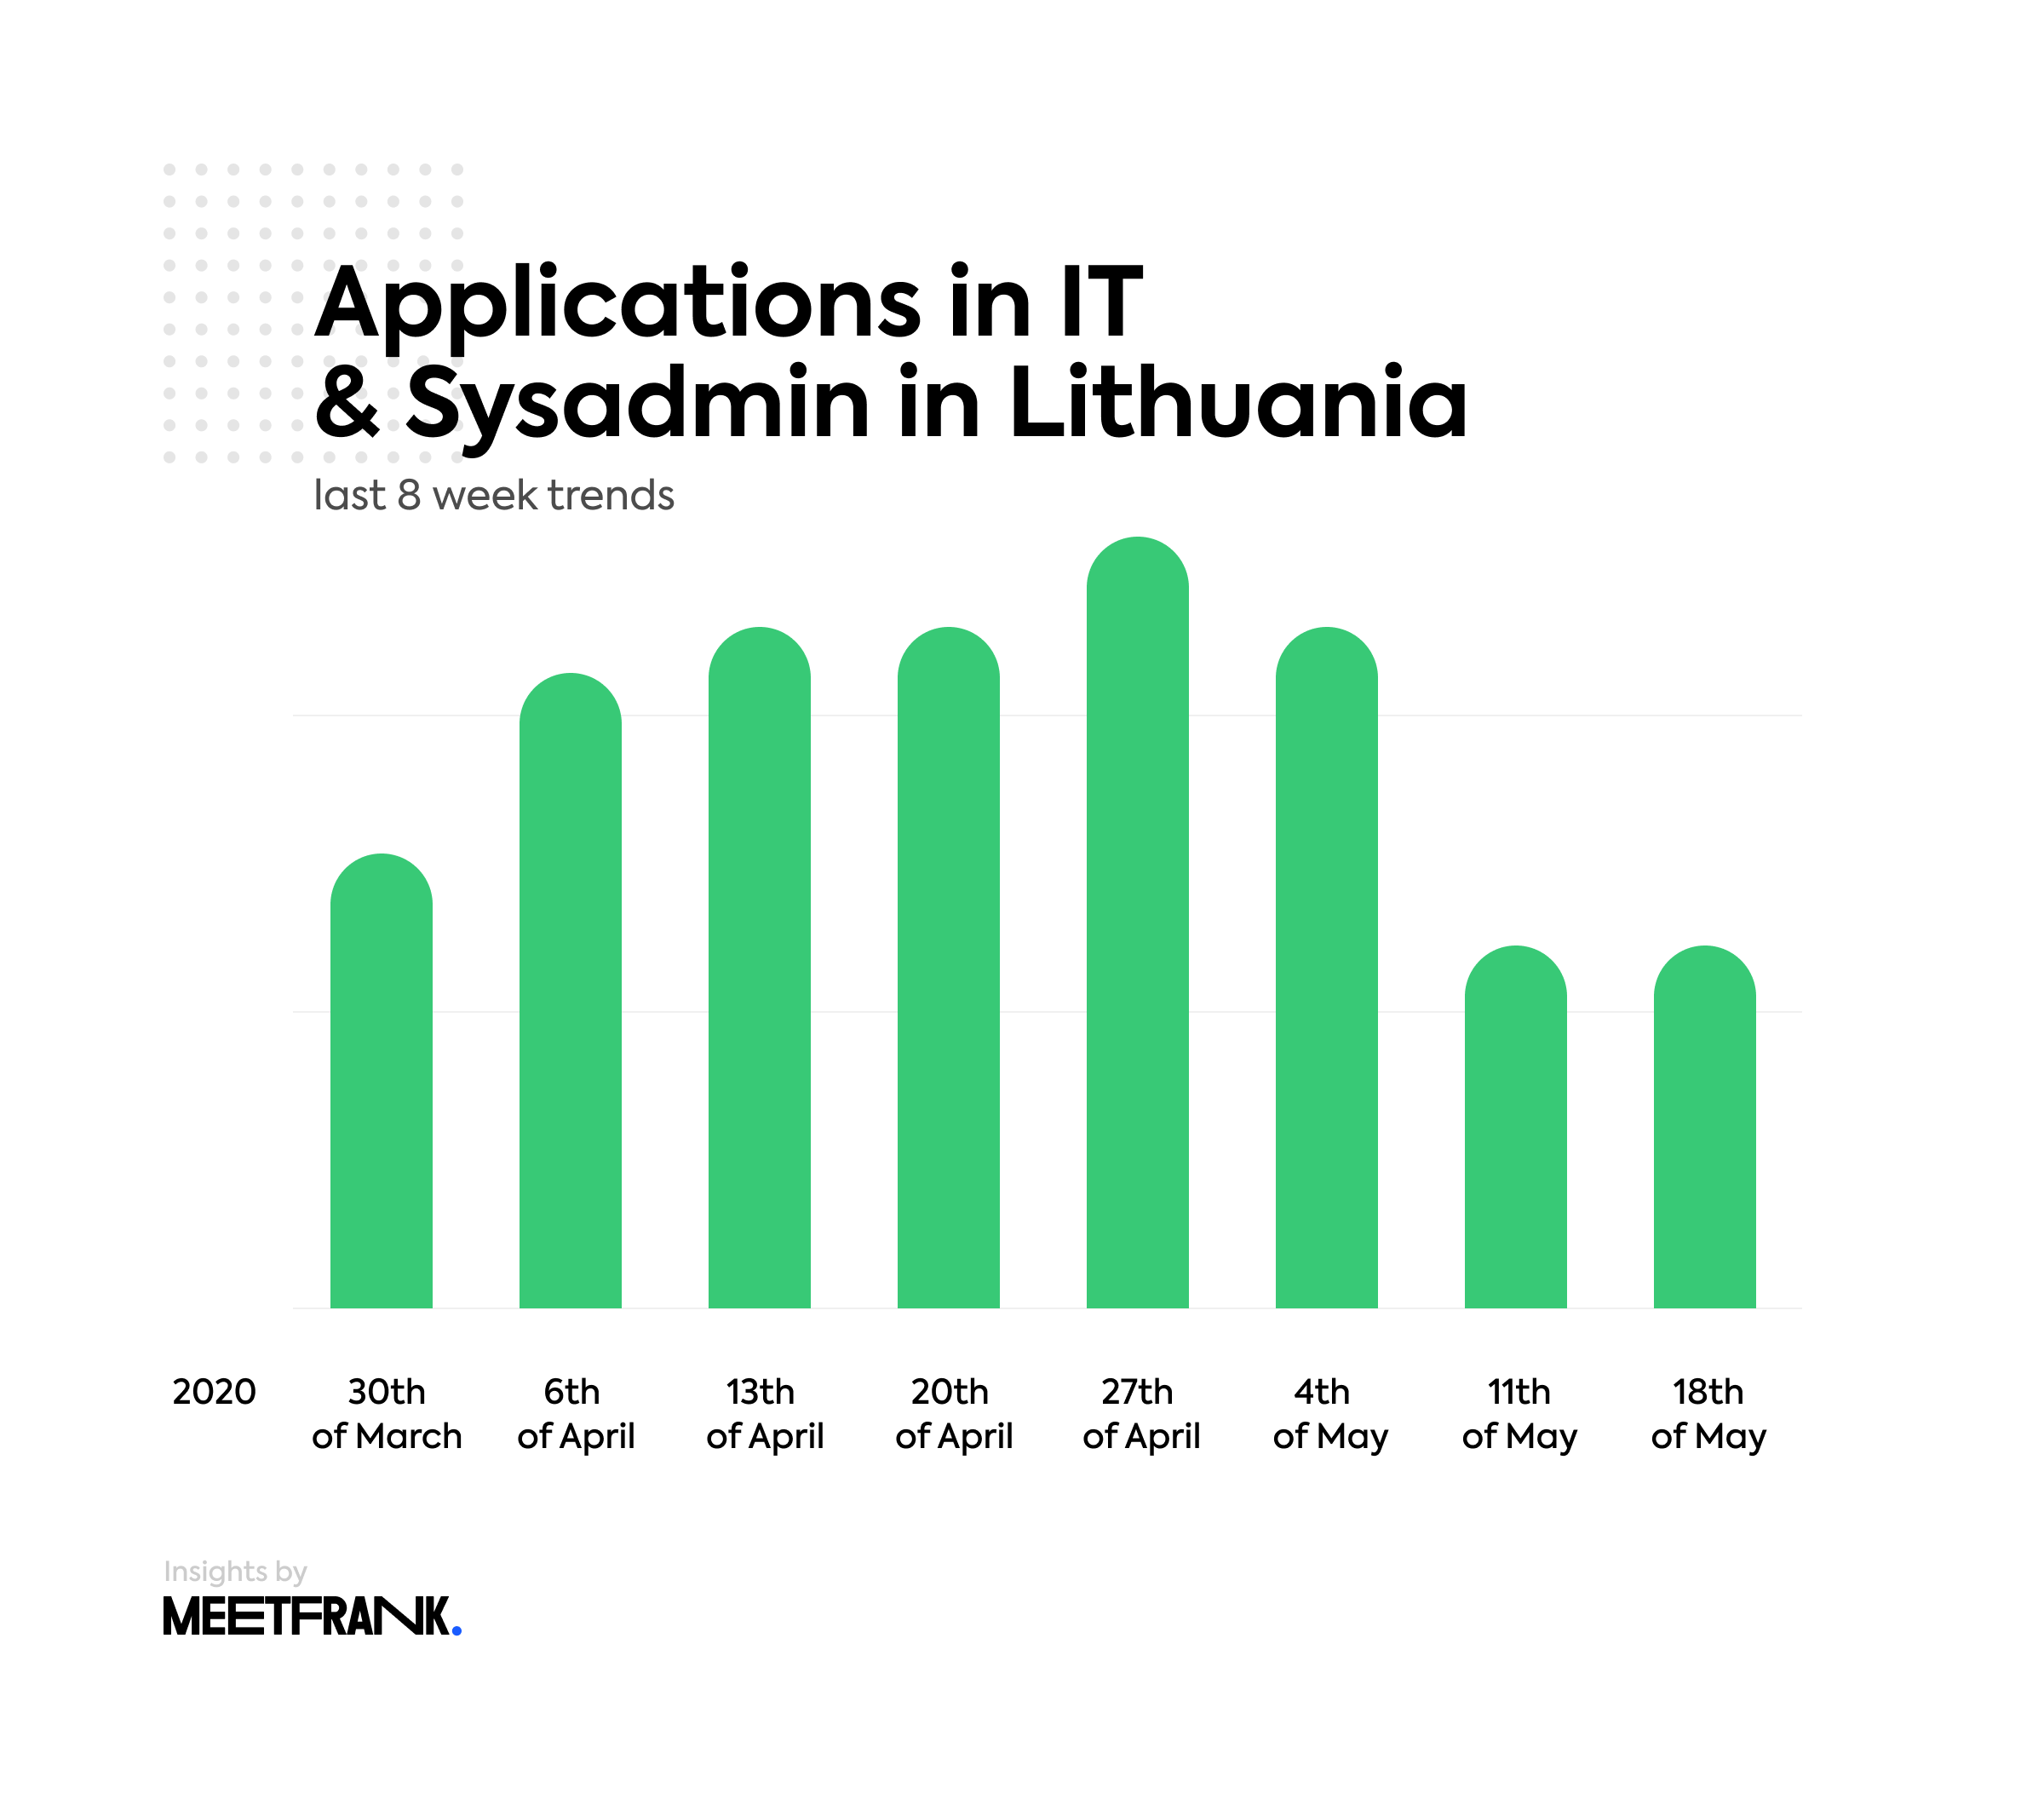 LT - Applications in IT & Sysadmin